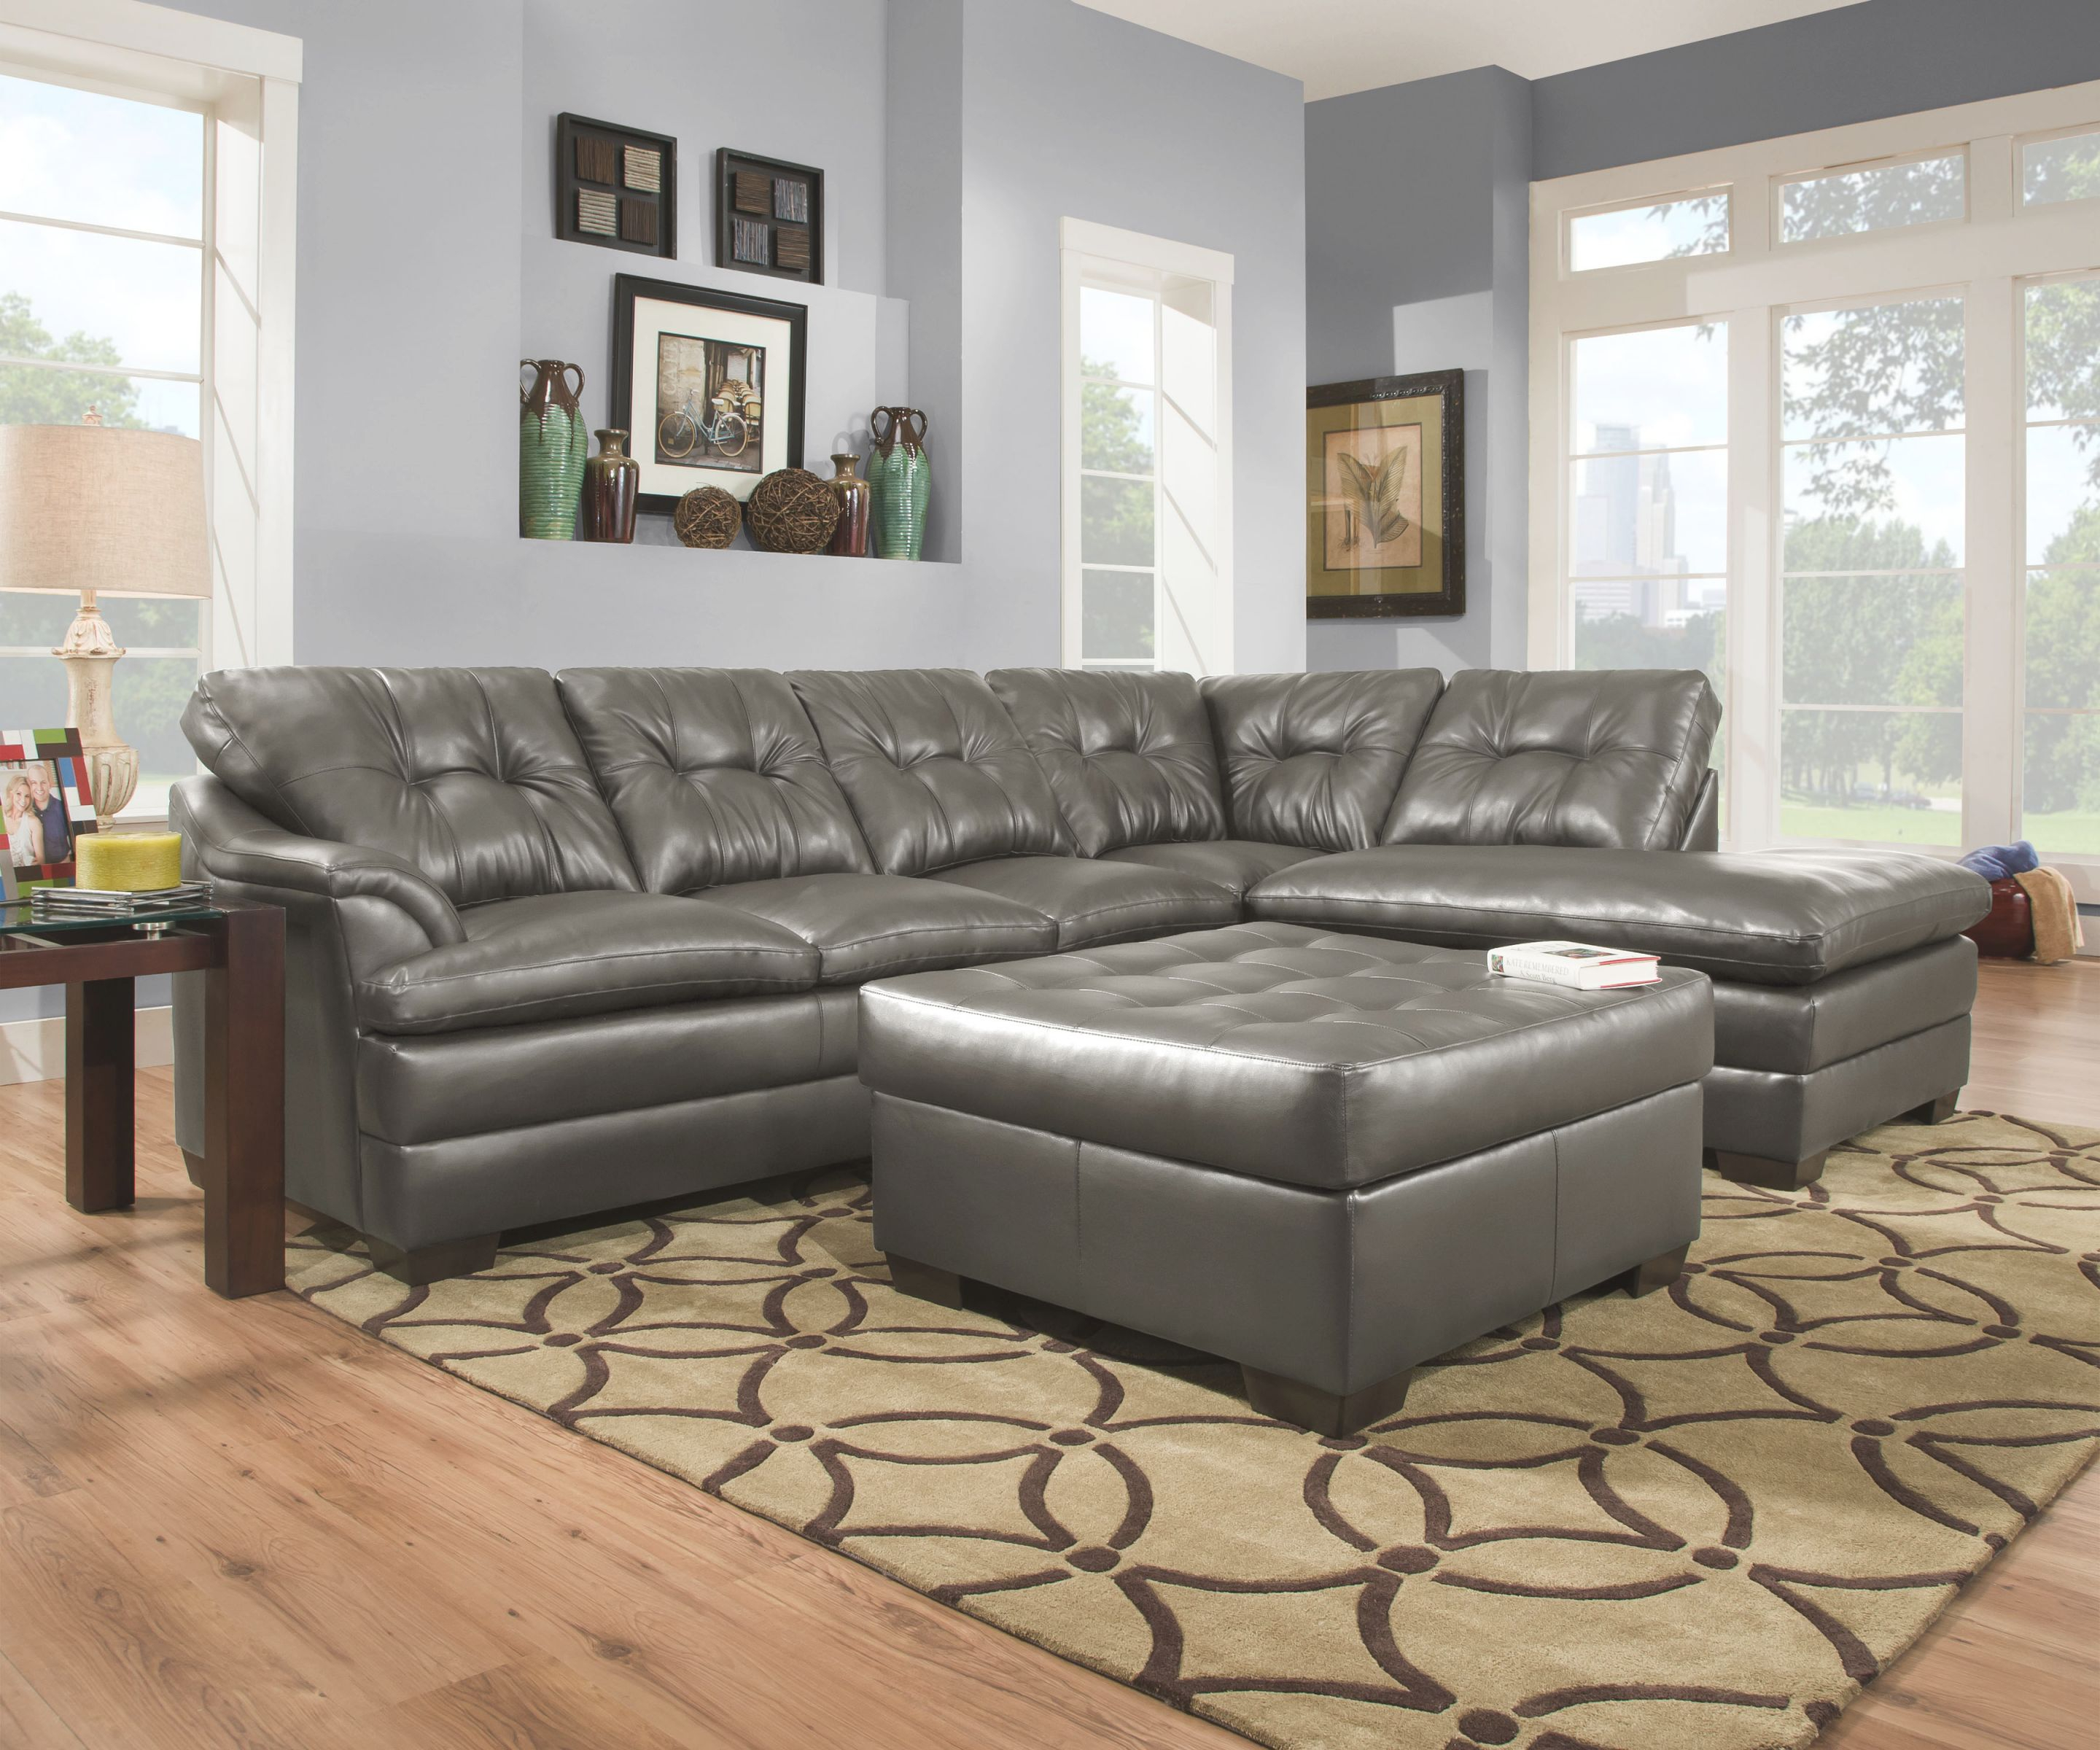 Simmons Apollo Charcoal 2Pc Sectional inside Simmons Living Room Furniture